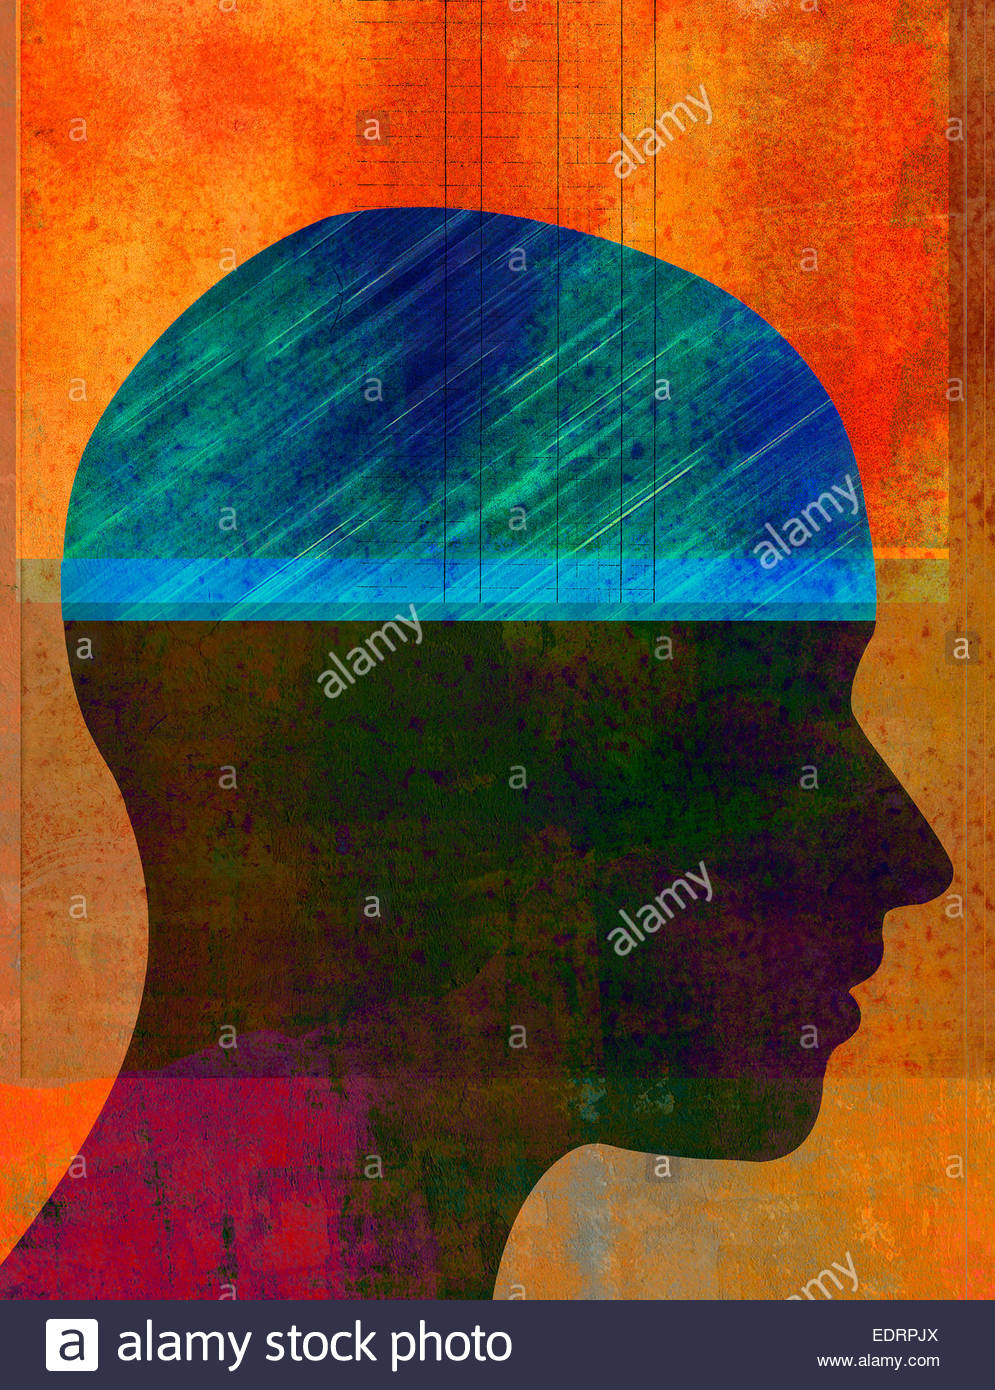 Ledger book in profile of man's head - Stock Image